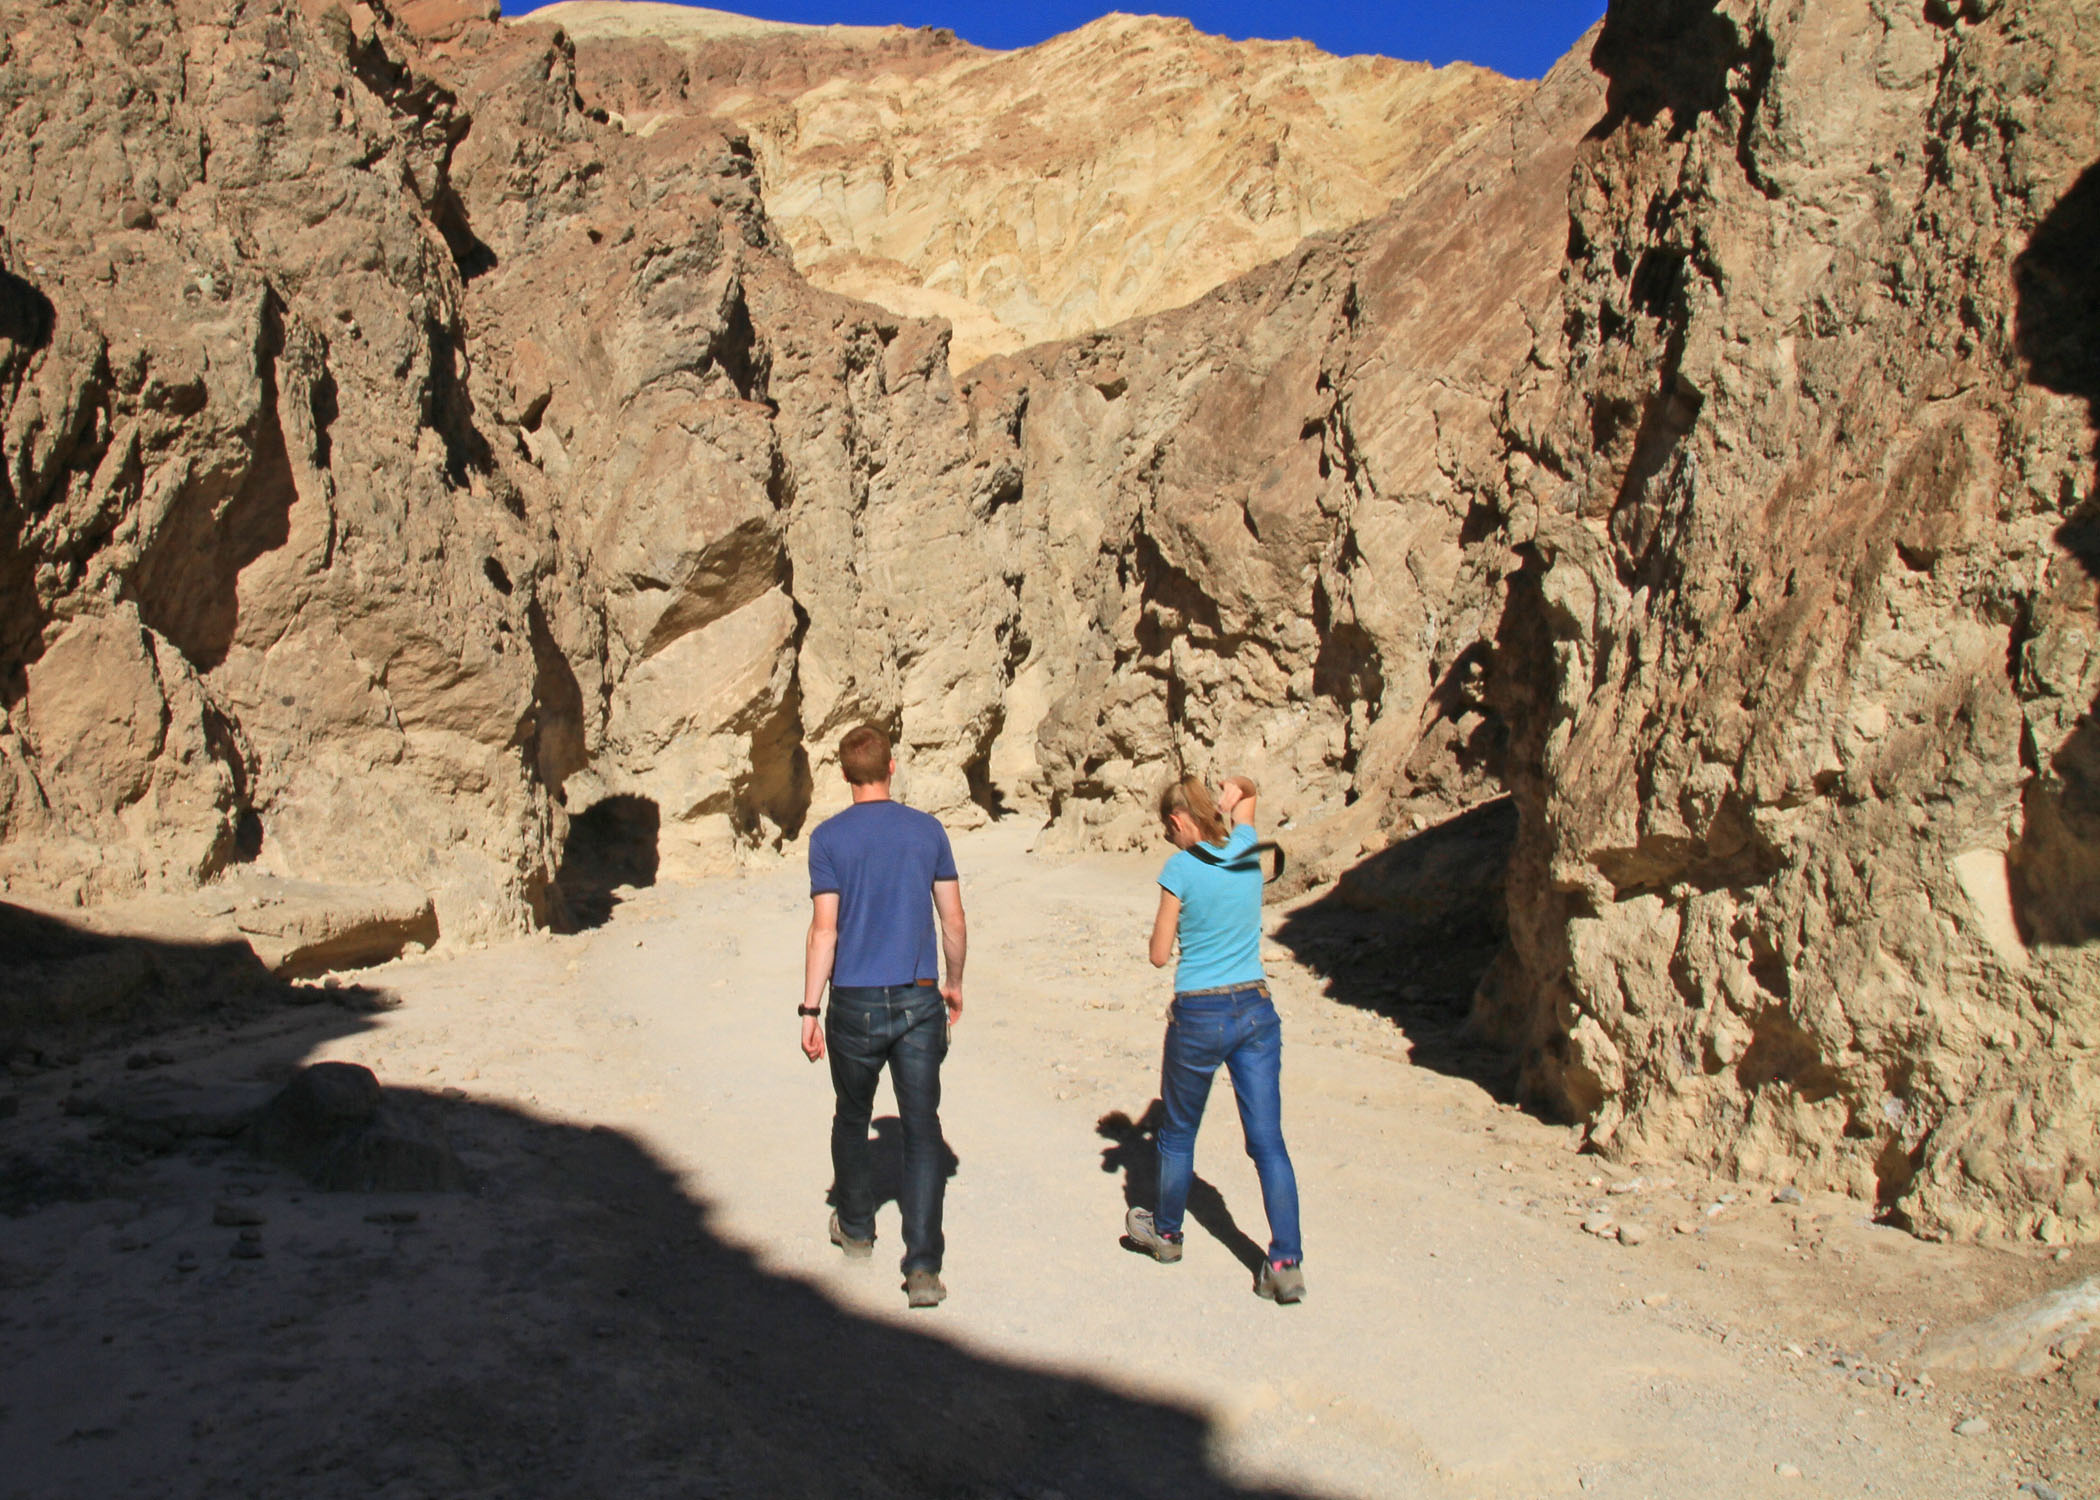 Hikers in Golden Canyon